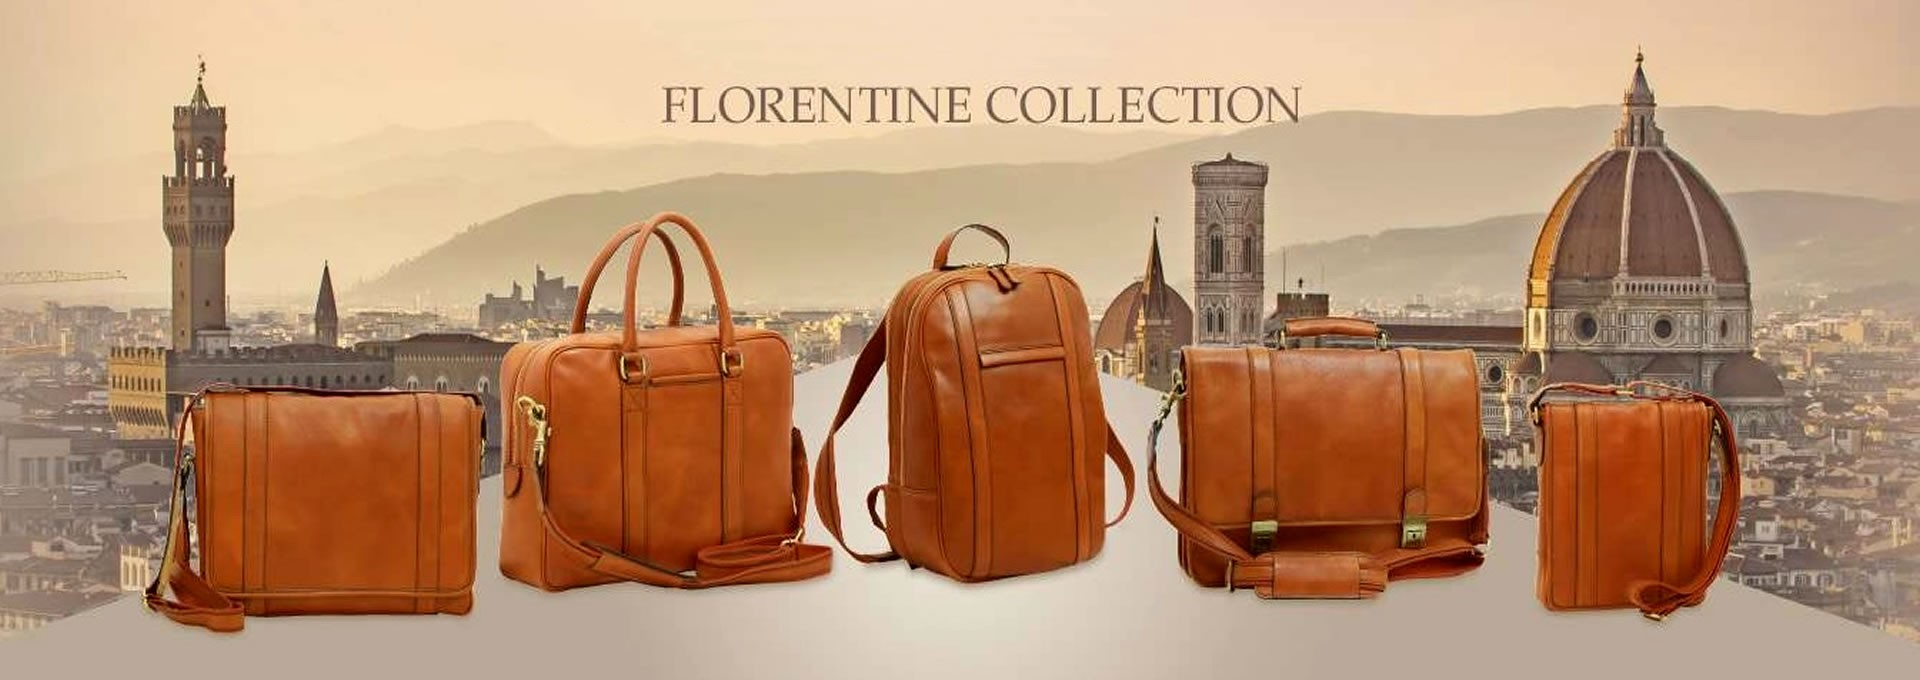 Florentine Leather Bags